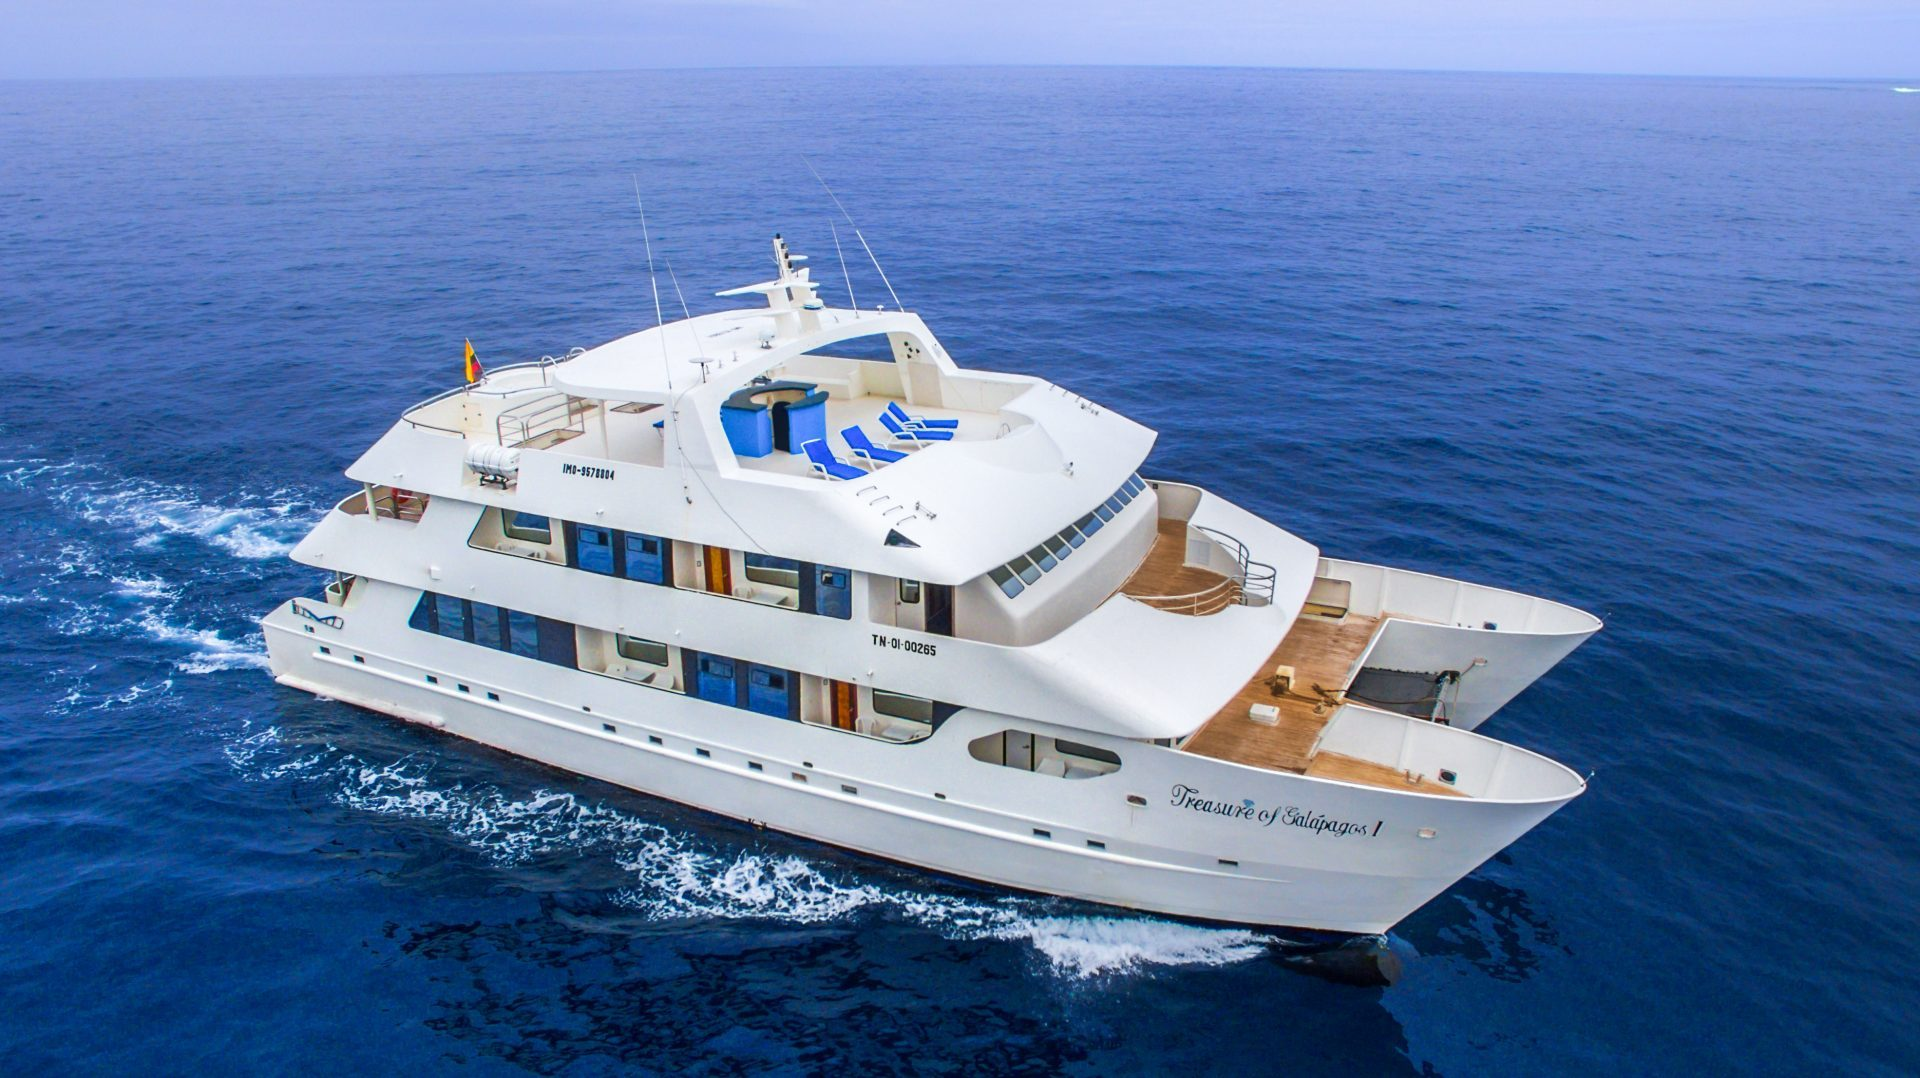 Treasure Of Galapagos A Stable And Wide 16 Passenger